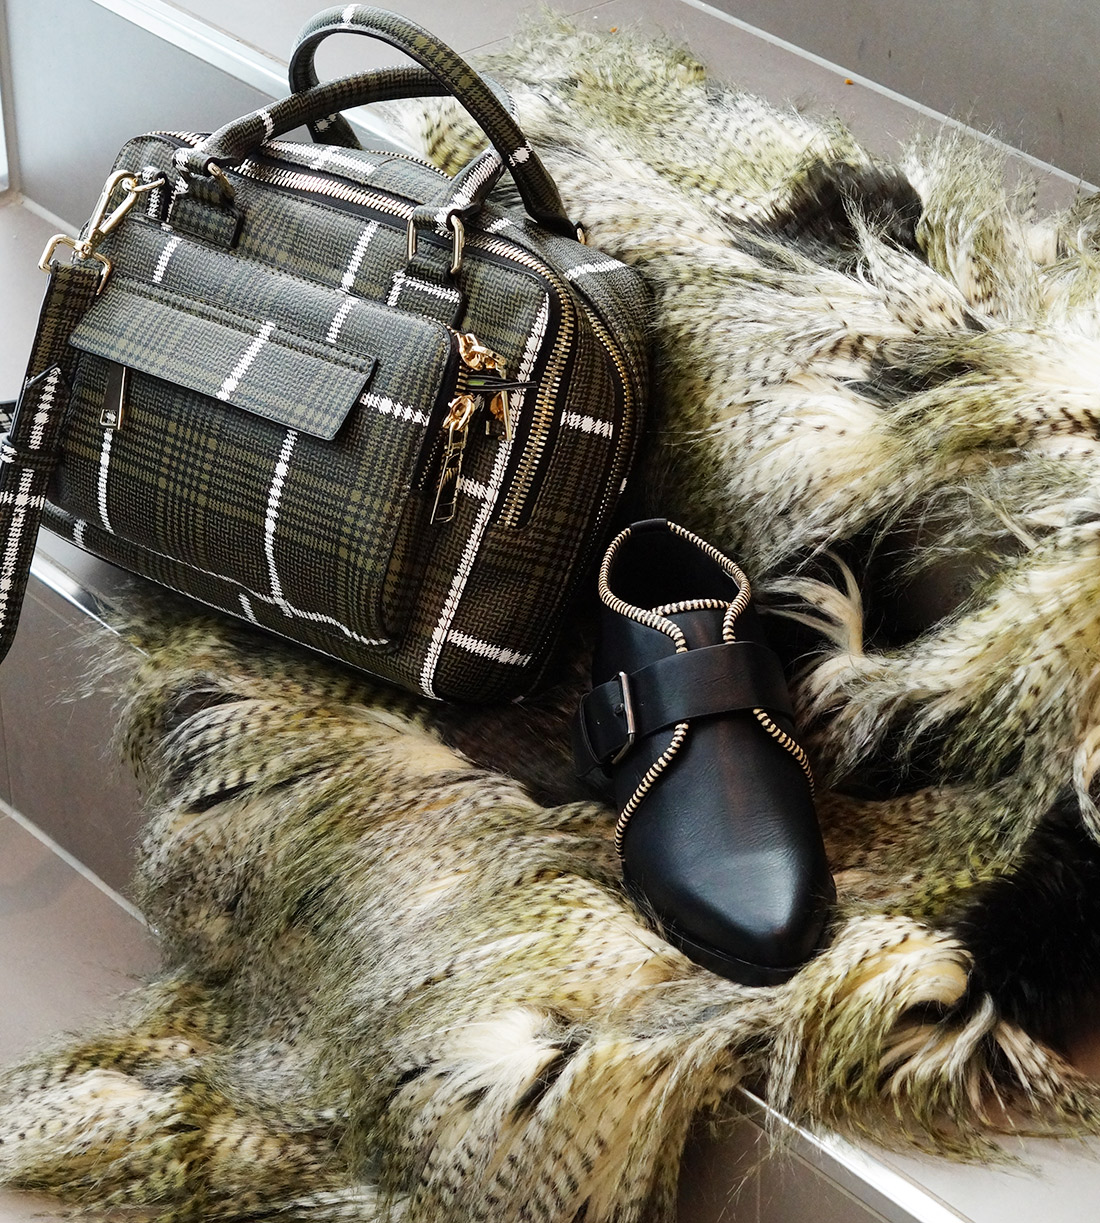 Bag-at-You---Fashion-blog---Unexpected-Fashion-Battle-in-Stadshart-Amstelveen---Details-outfit---urban-outdoors